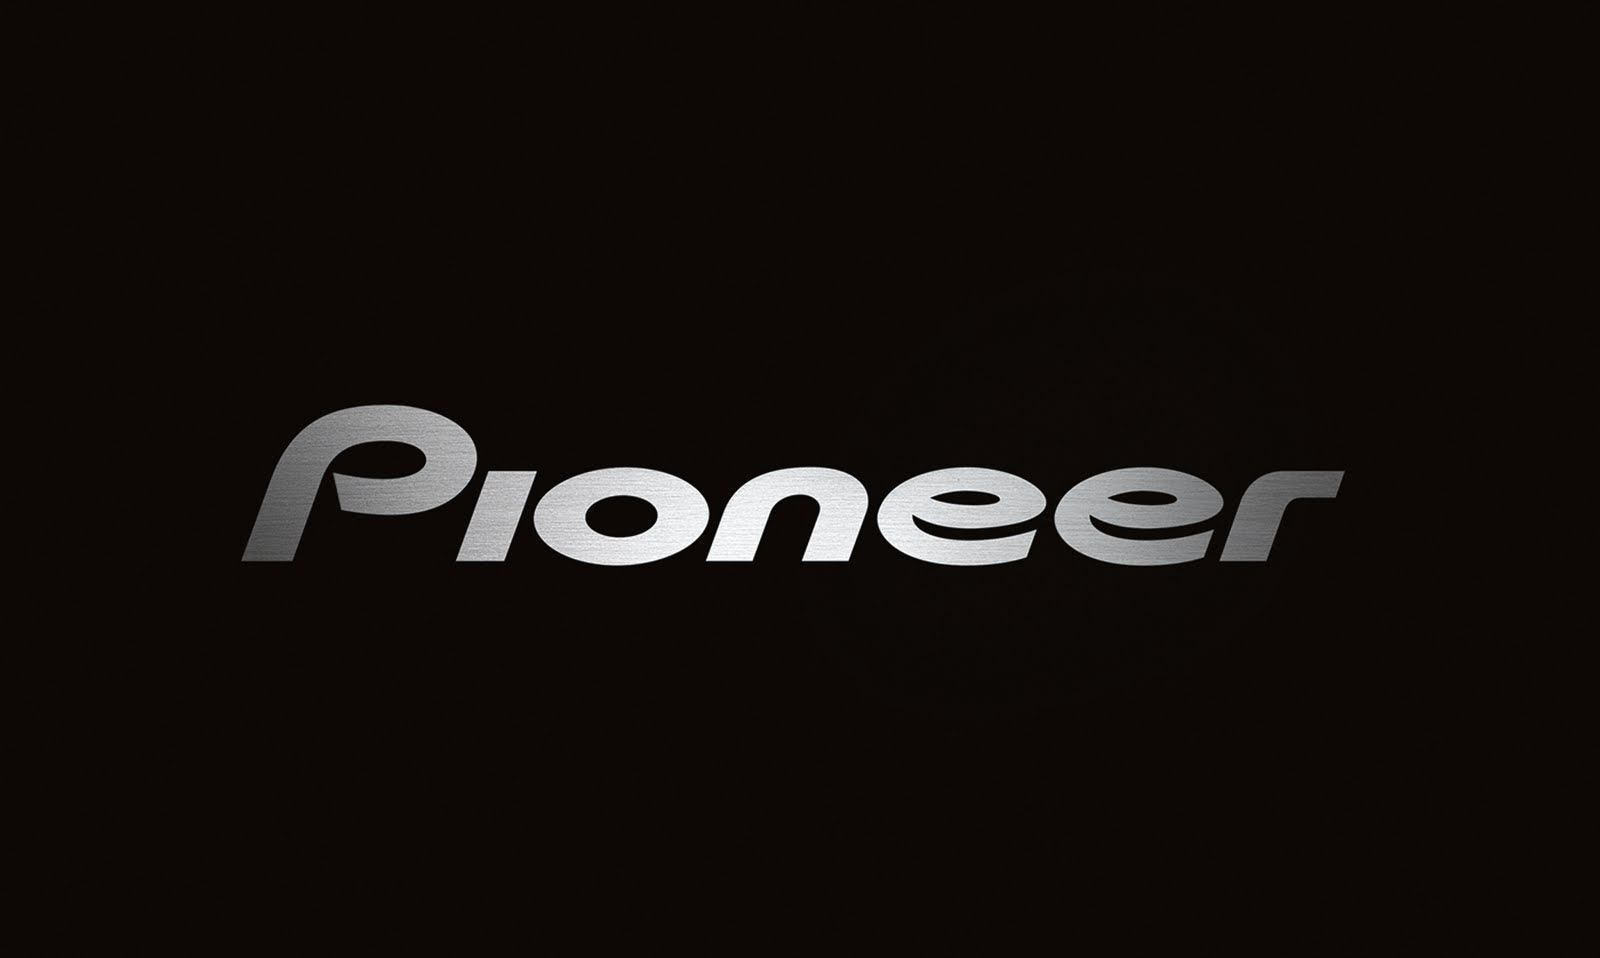 pioneer logo hd wallpaper widescreen 123 pinterest